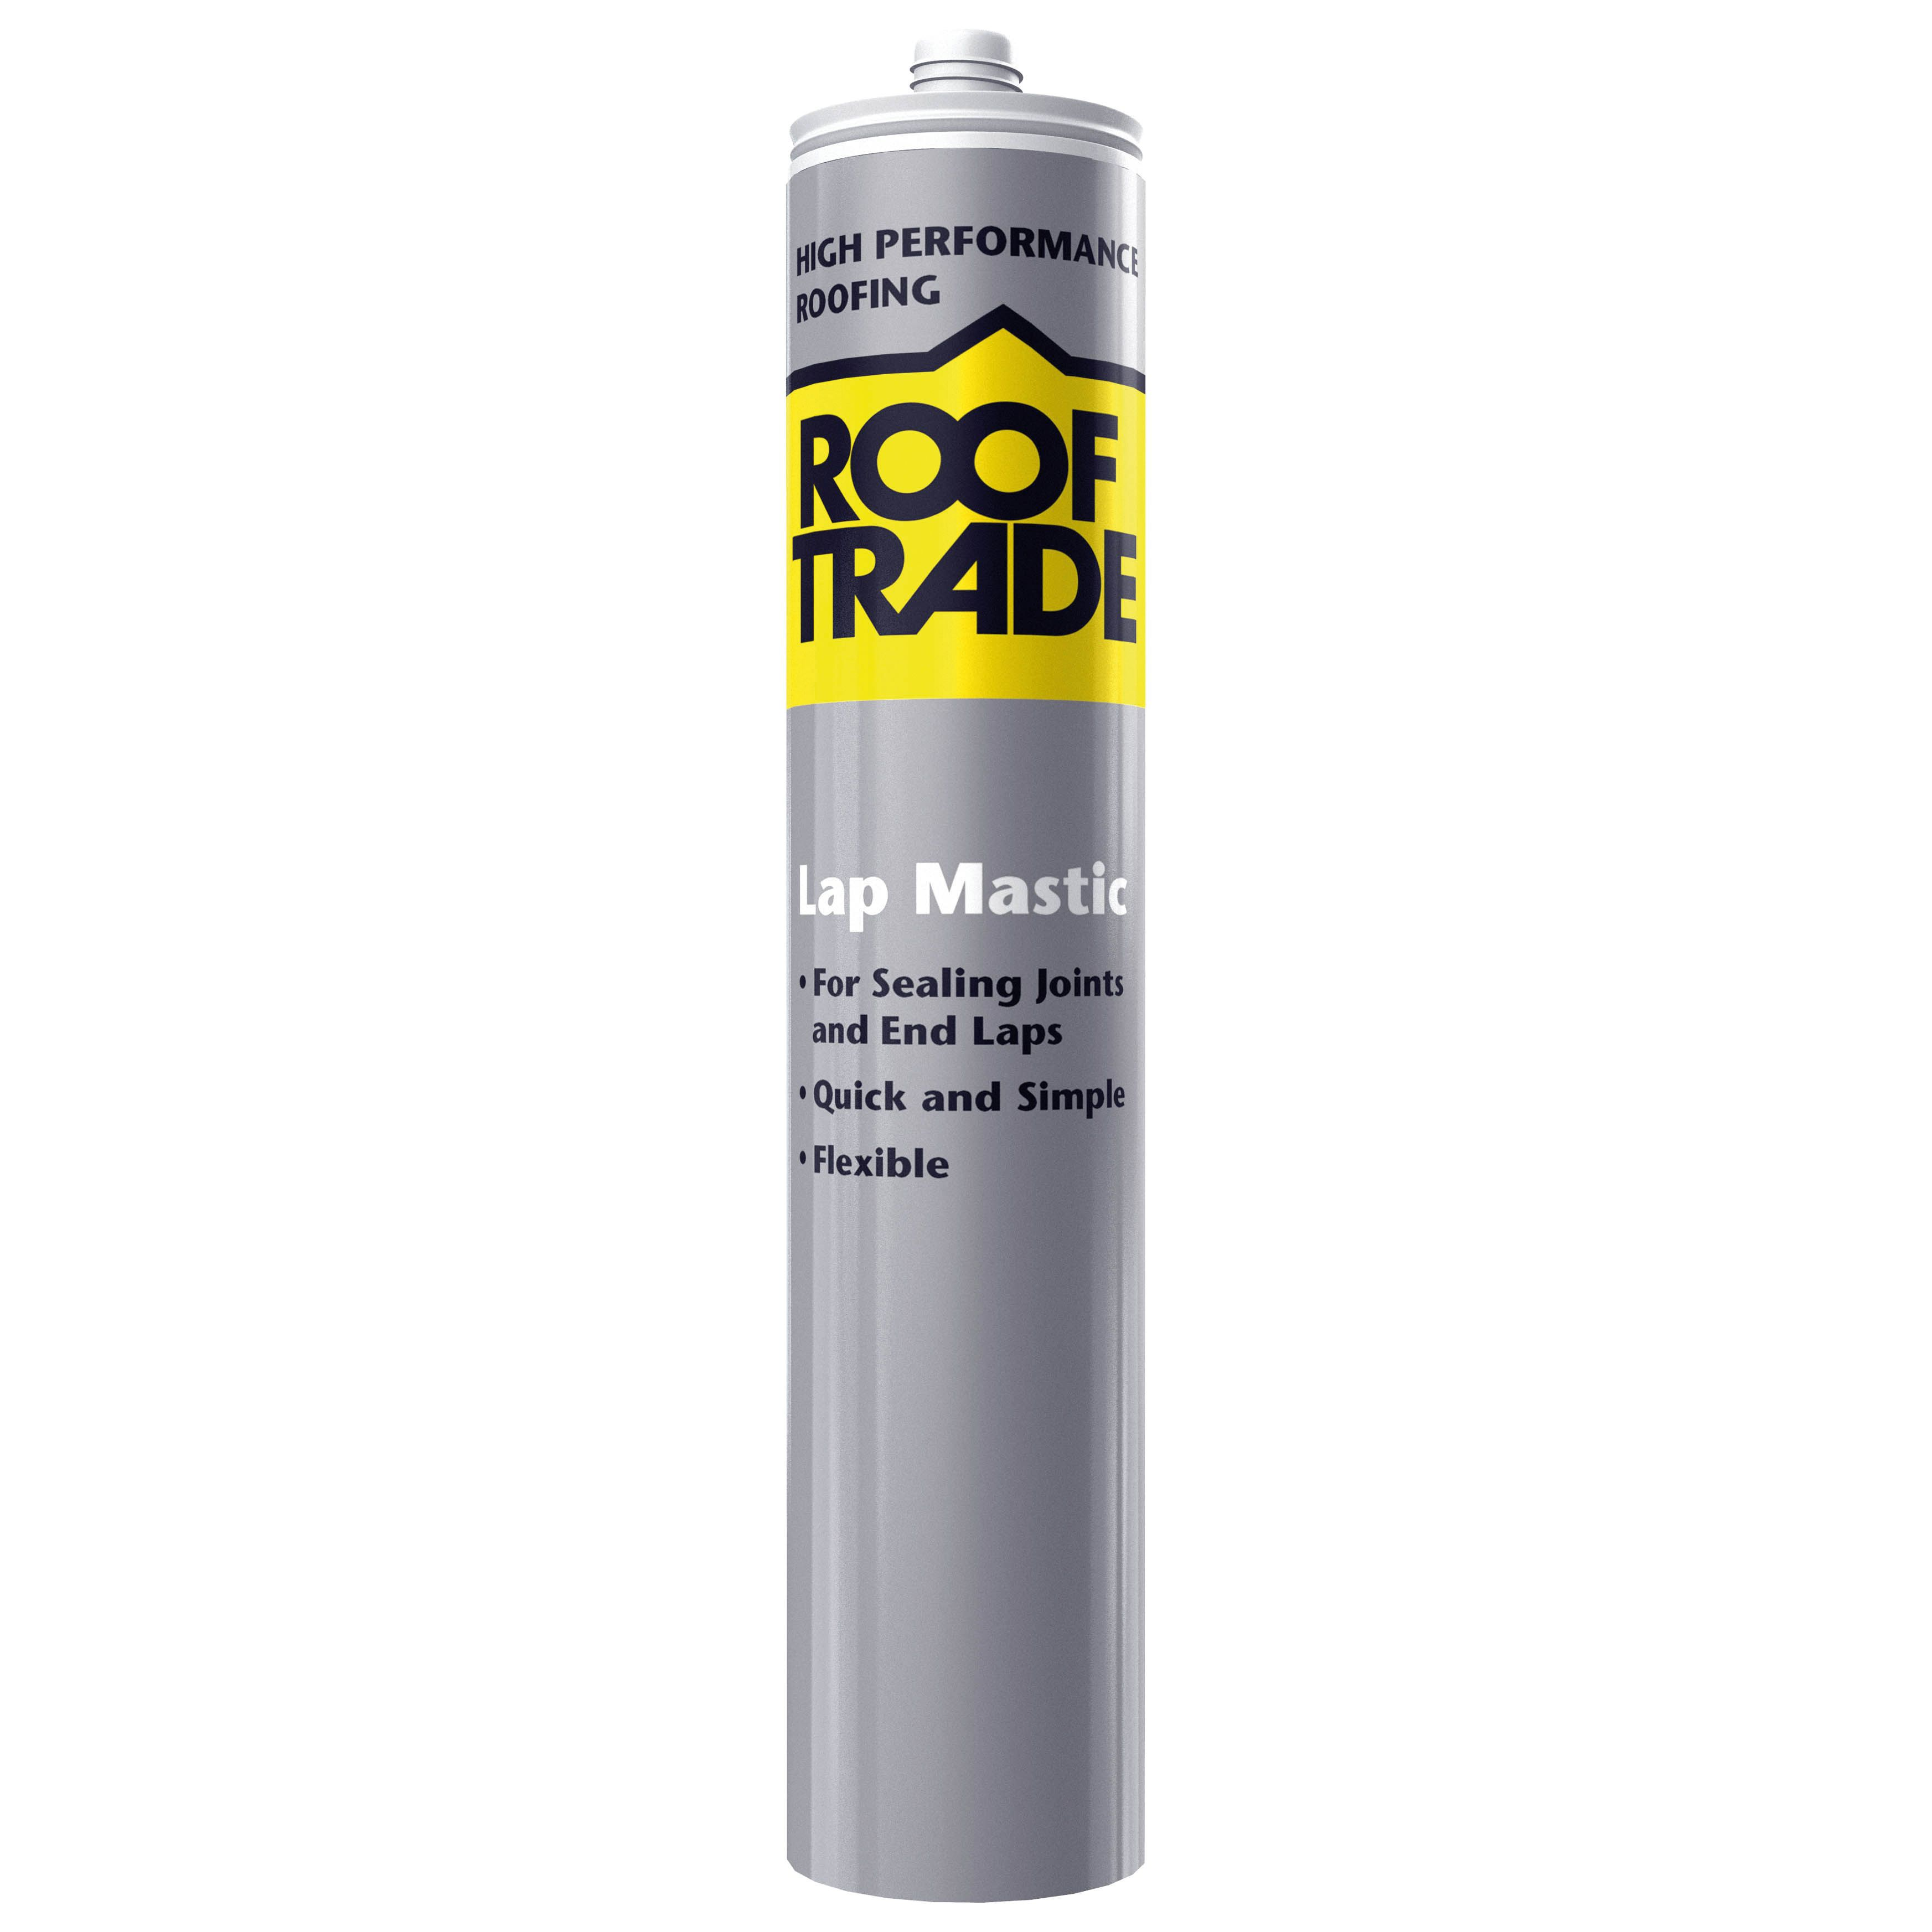 Rooftrade Black Lap Mastic Sealant 310ml Departments